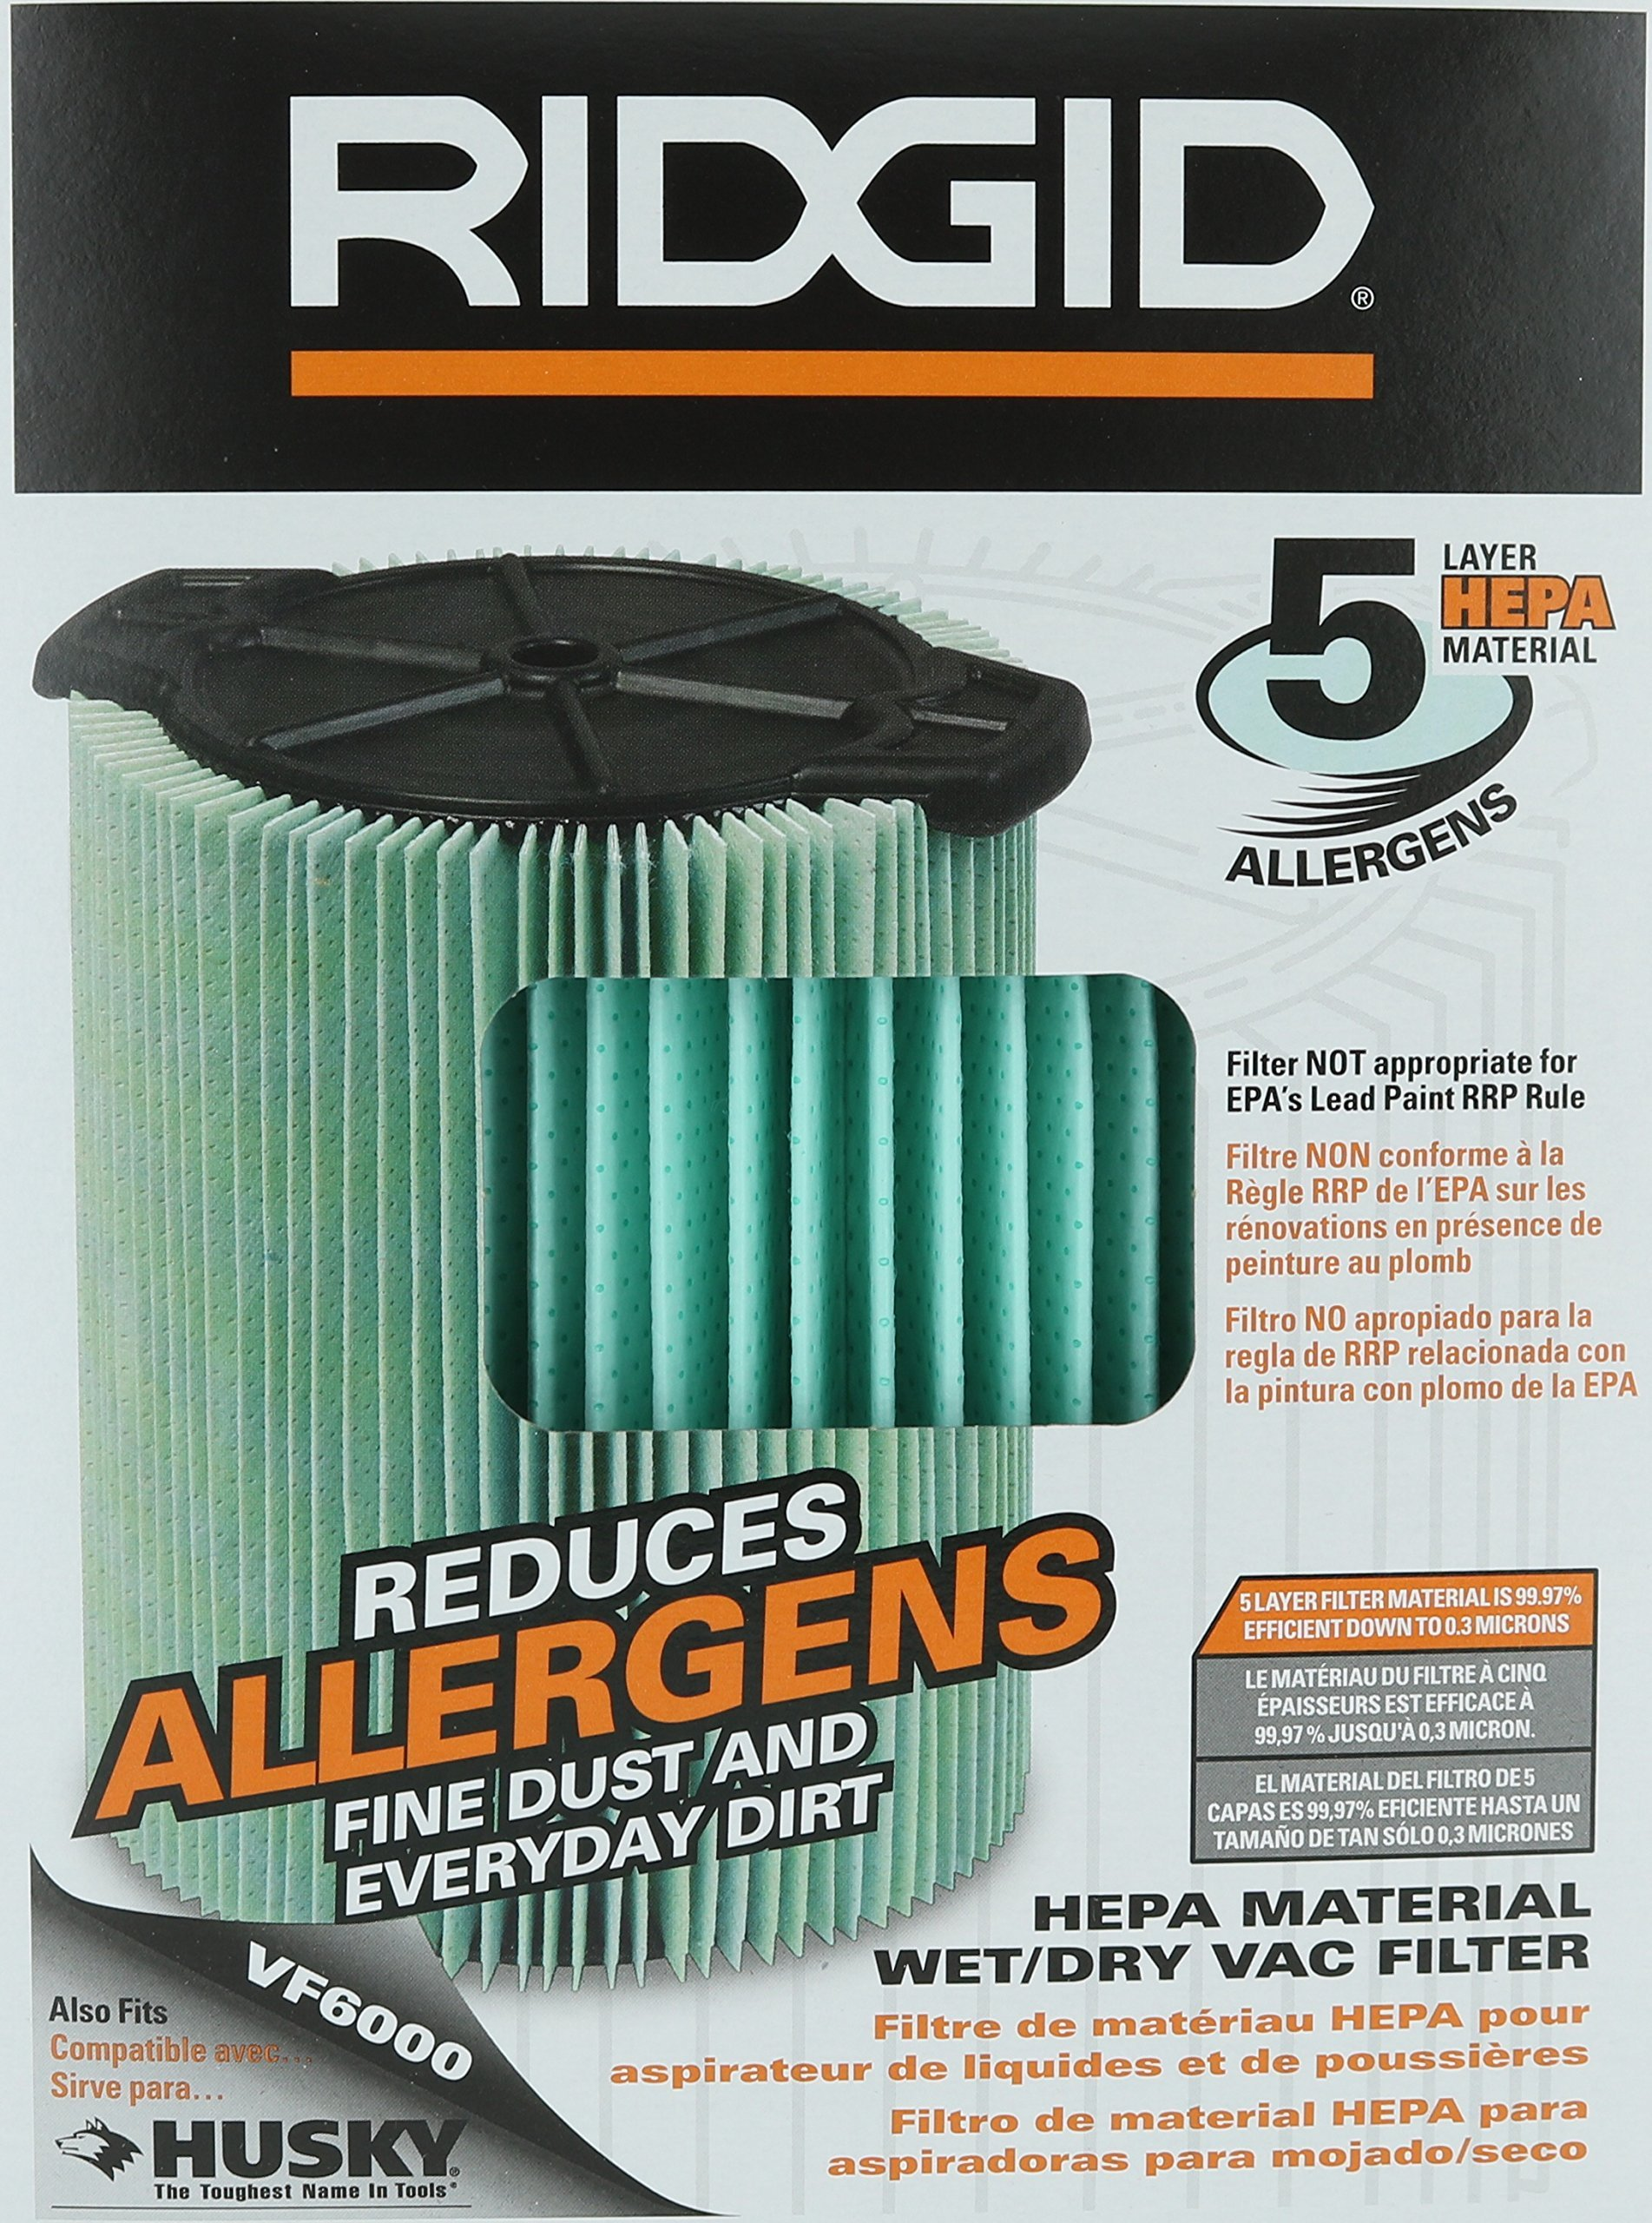 Ridgid VF6000 Genuine Replacement 5-Layer Allergen, Fine Dust, and Dirt Wet/Dry Vac Filter for Ridgid 5-20 Gallon Vacuums by Ridgid